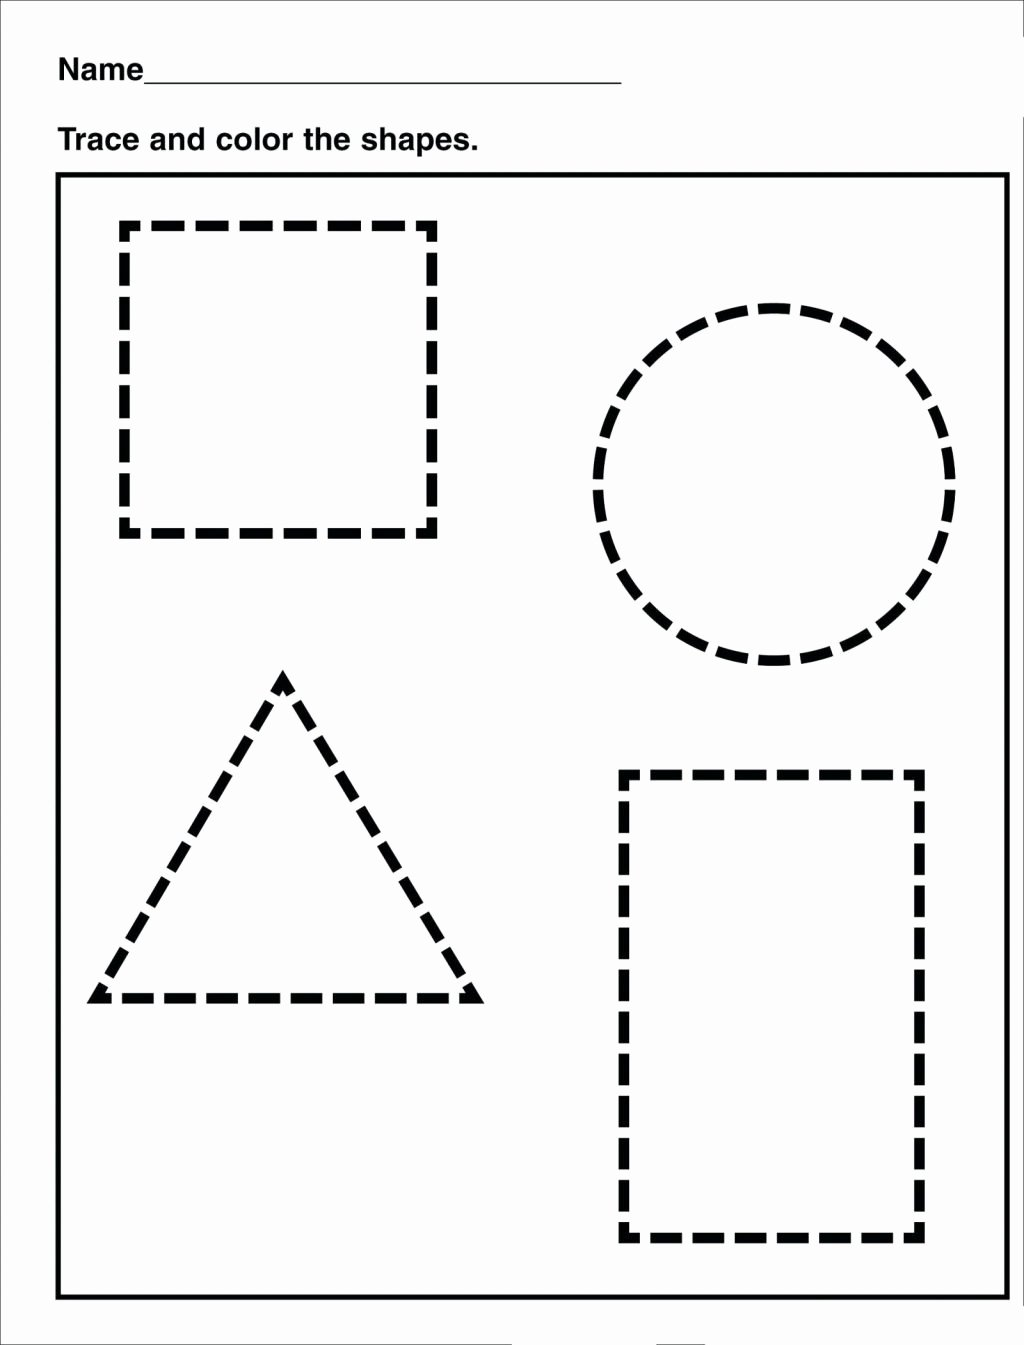 Free Tracing Shapes Worksheets for Preschoolers Fresh Worksheet Awesome Worksheets forreschoolers Free Tracing